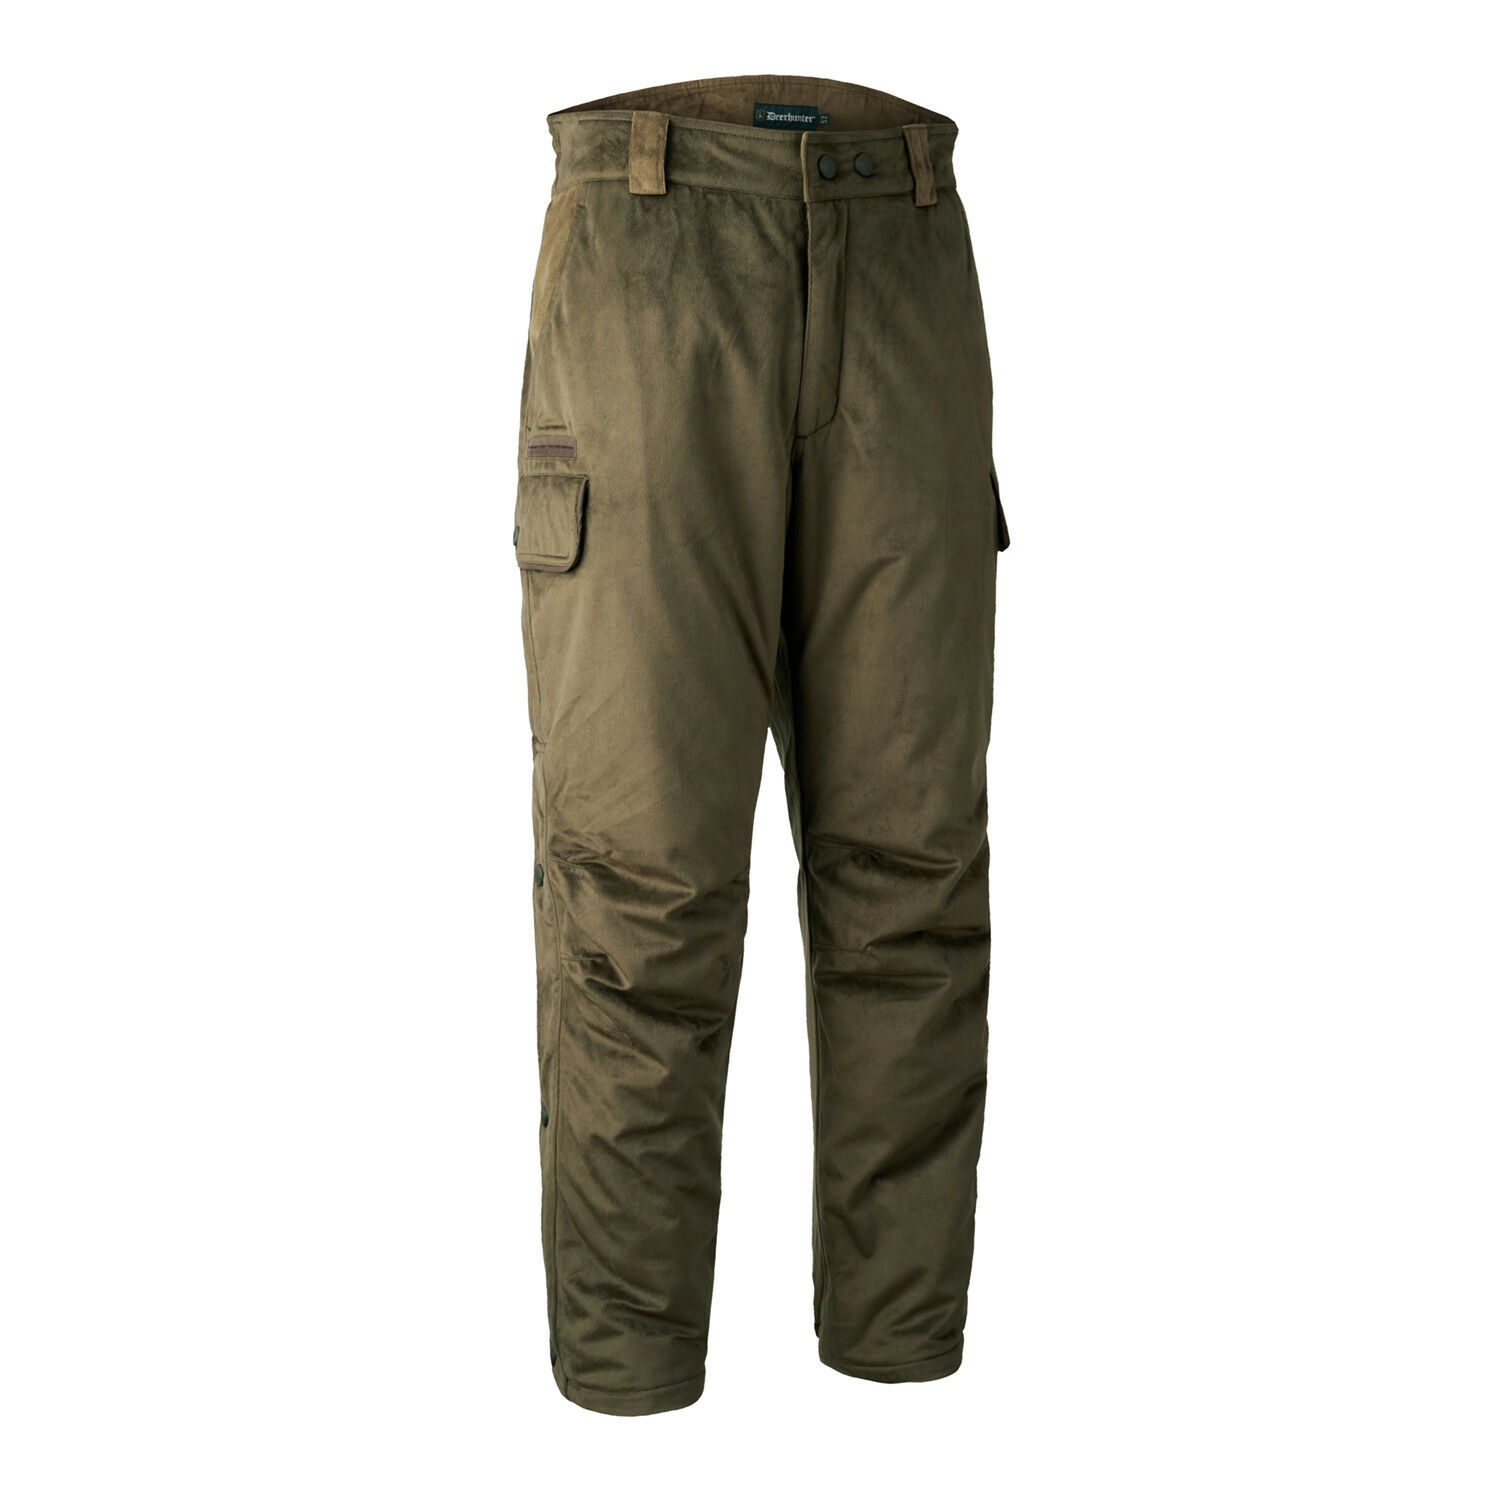 Hunting Trousers PCS silent for Winter quietly with membrane 391-Peat from Deerhunter 3085